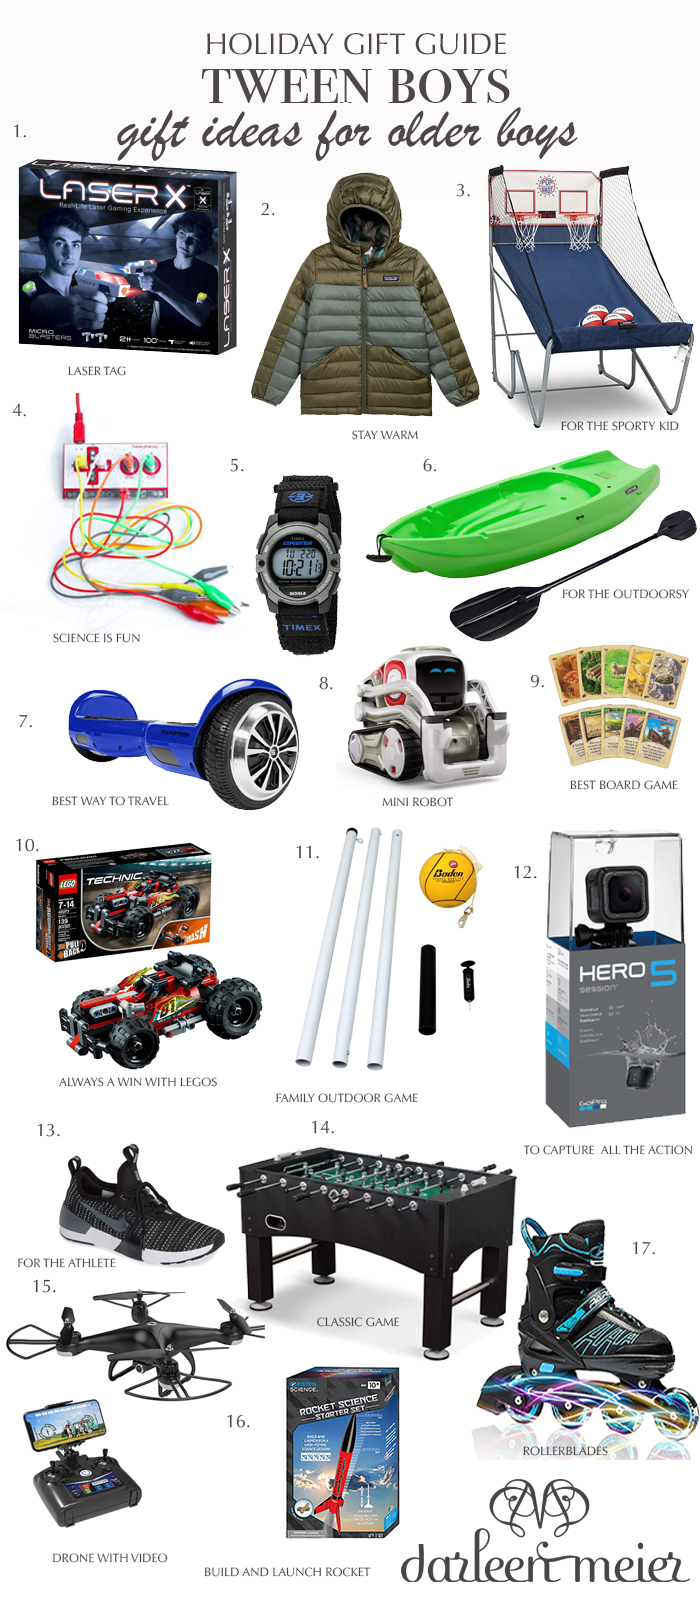 Look no further! The ultimate holiday gift guide for tween boys and teen boys this holiday season